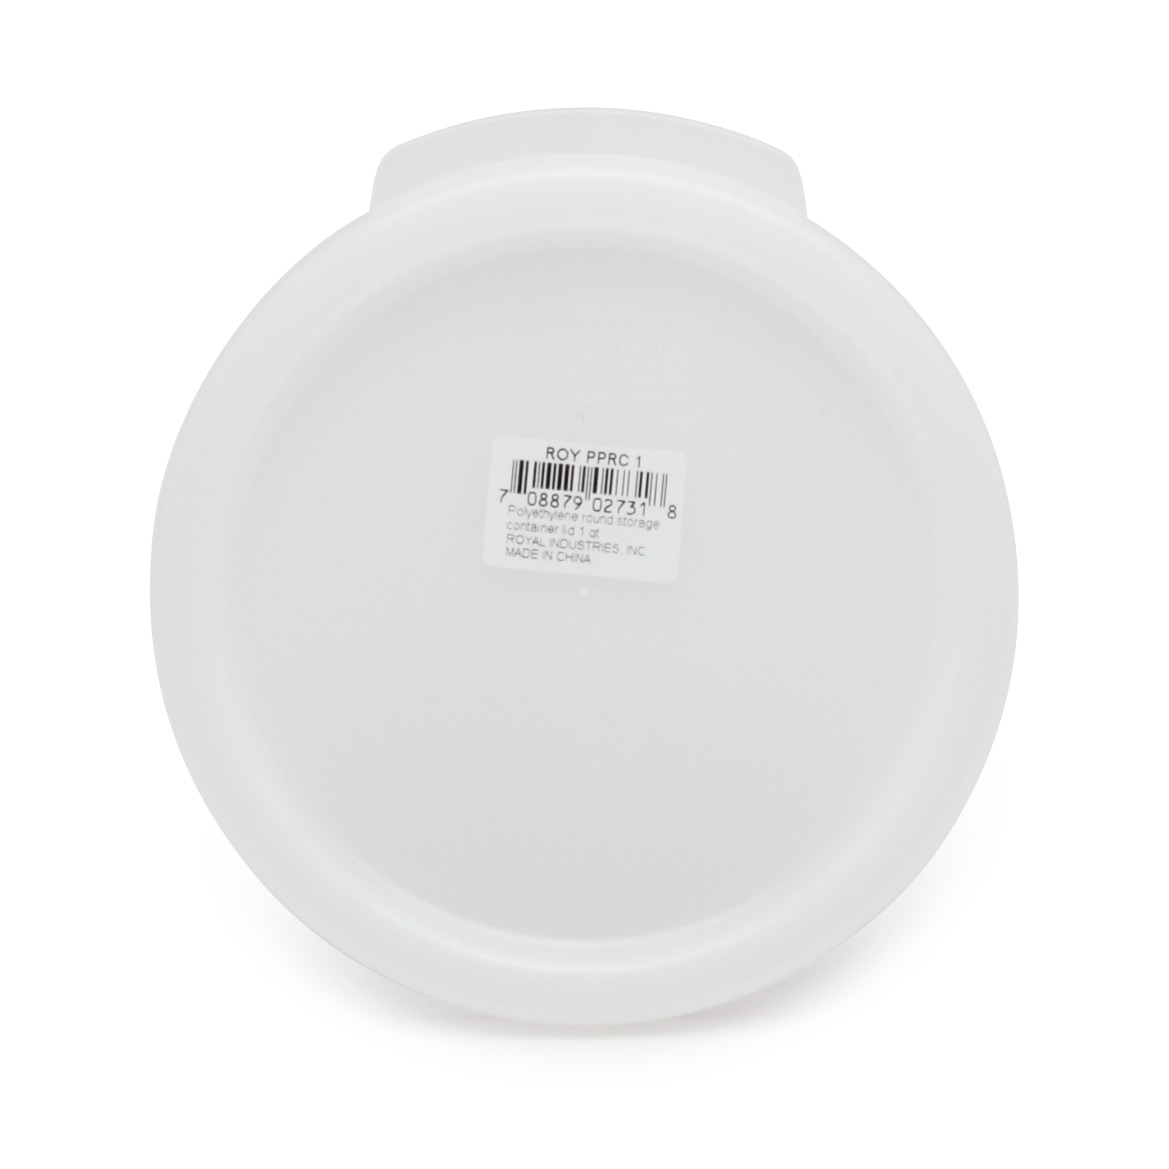 Royal Industries ROY PPRC 1 food storage container cover